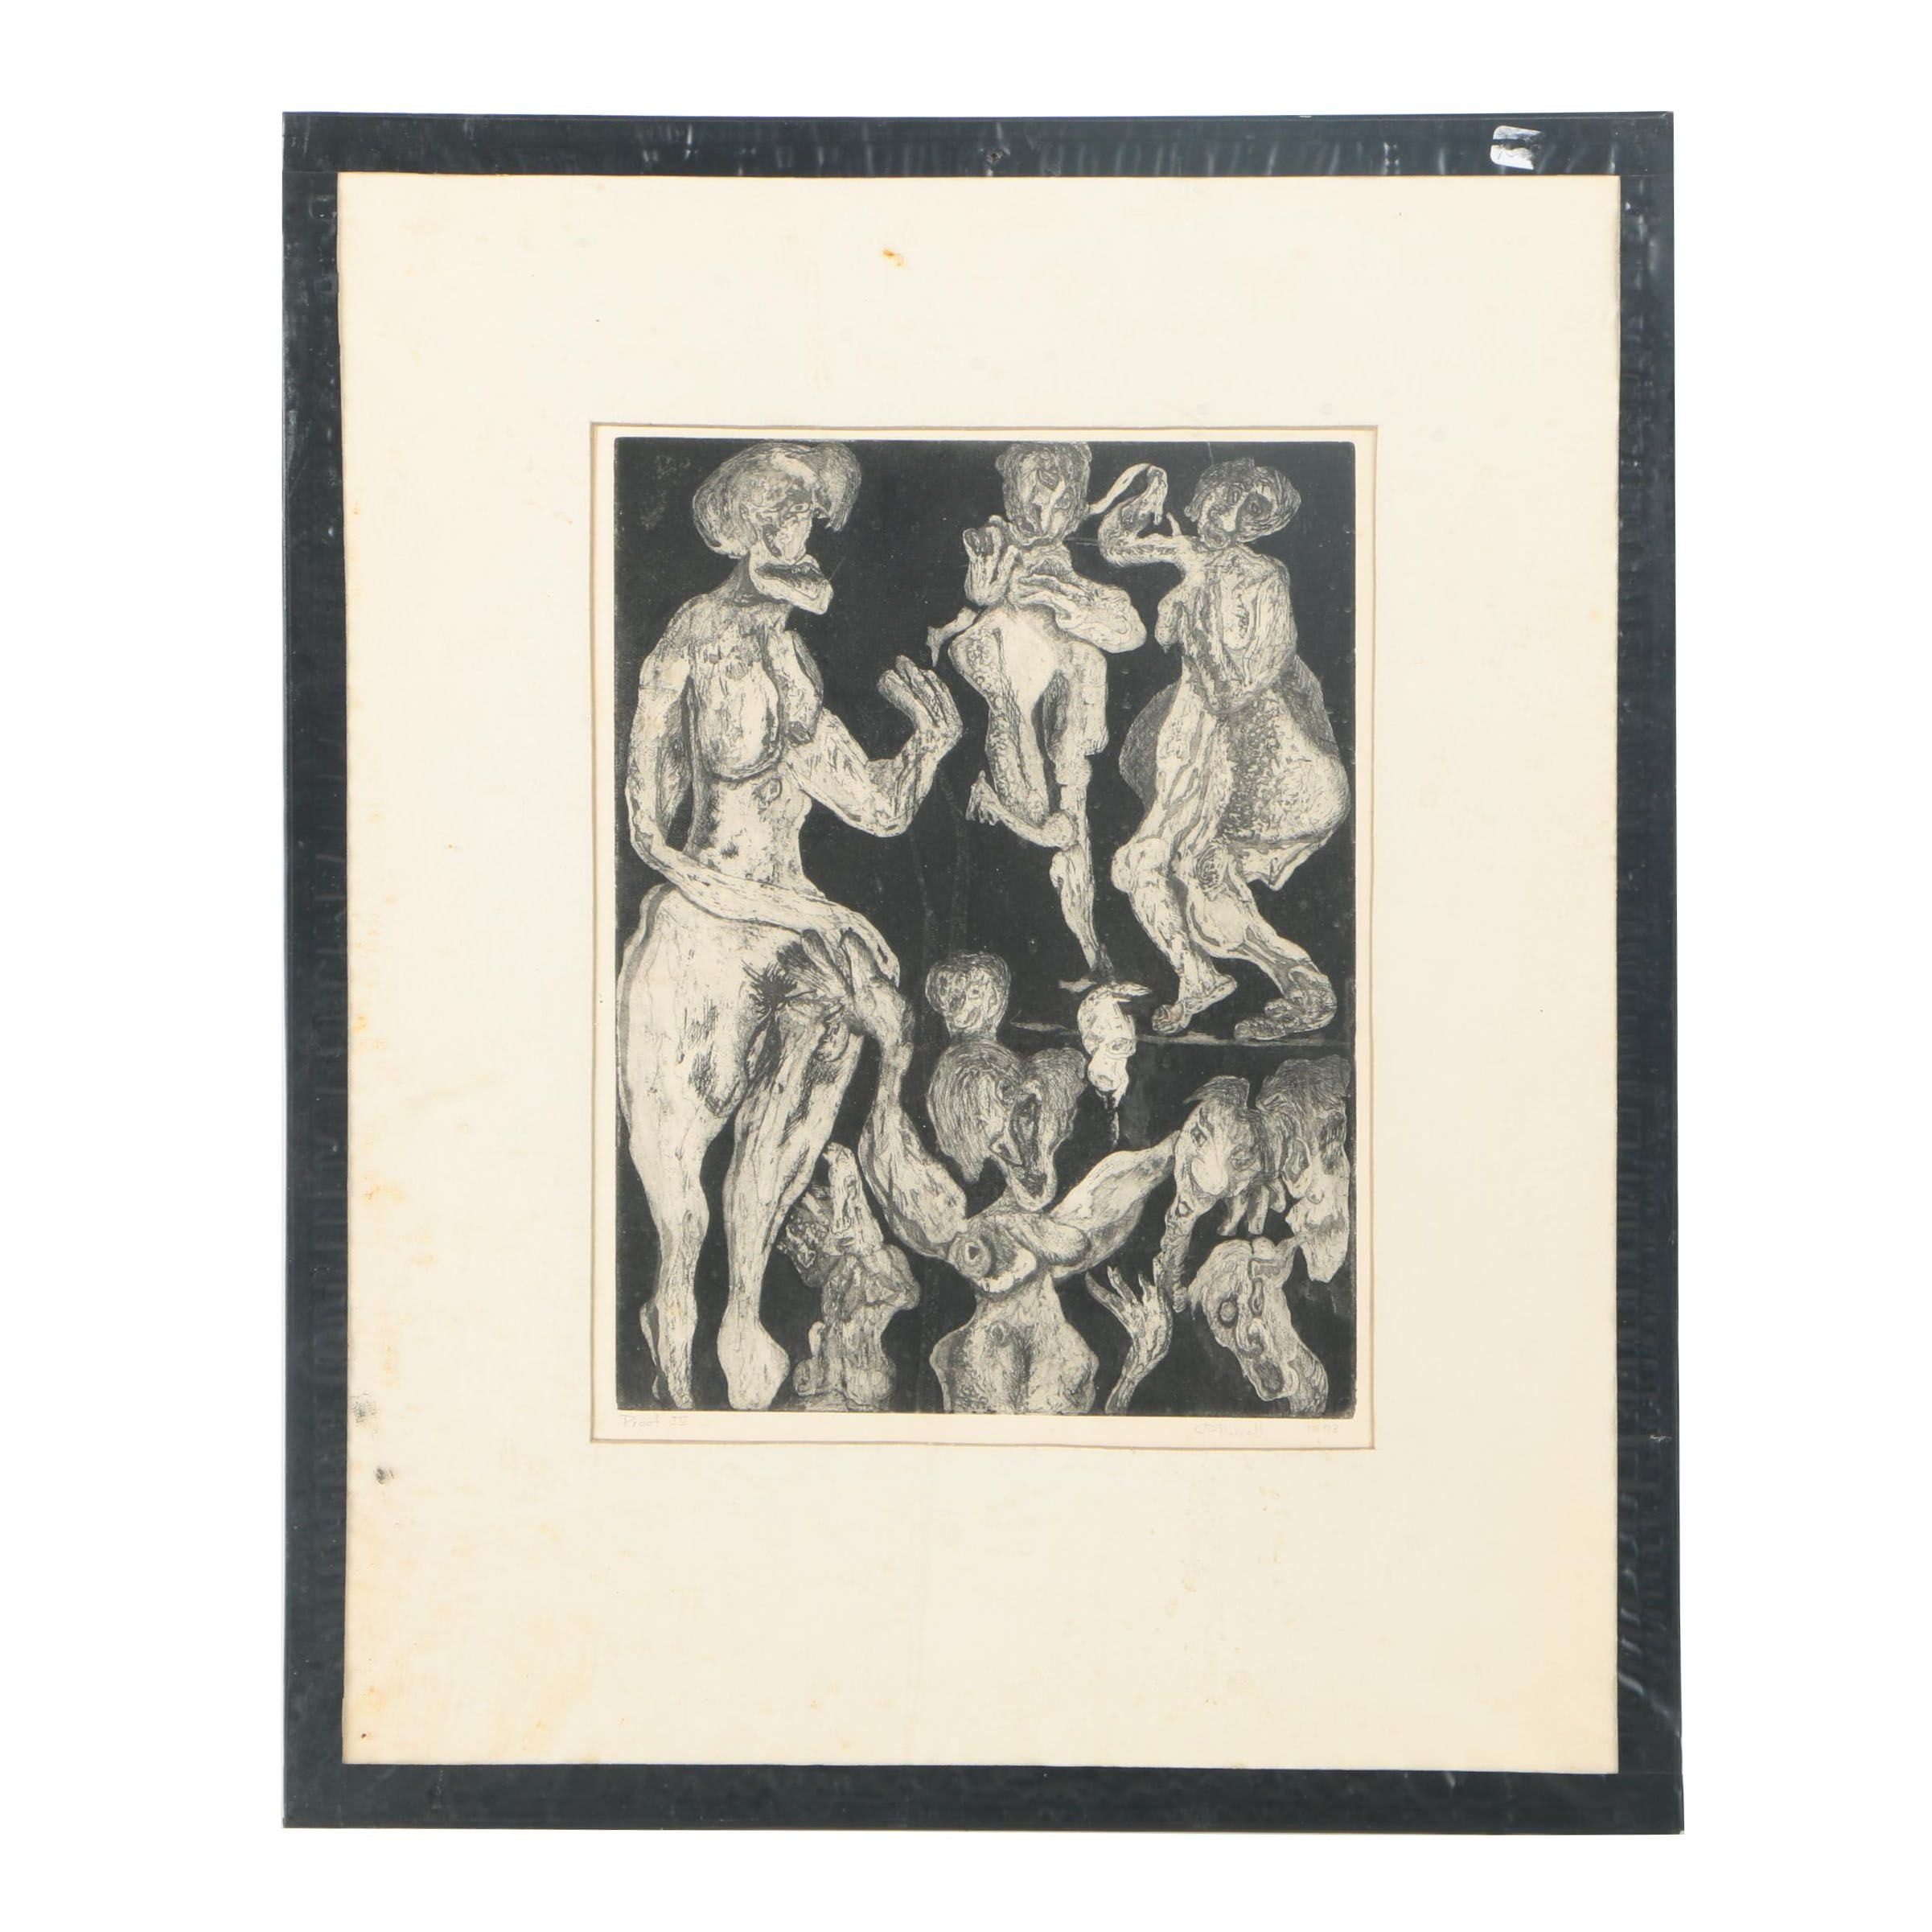 J. P. Purcell Limited Edition Aquatint Etching on Paper of Abstract Figures